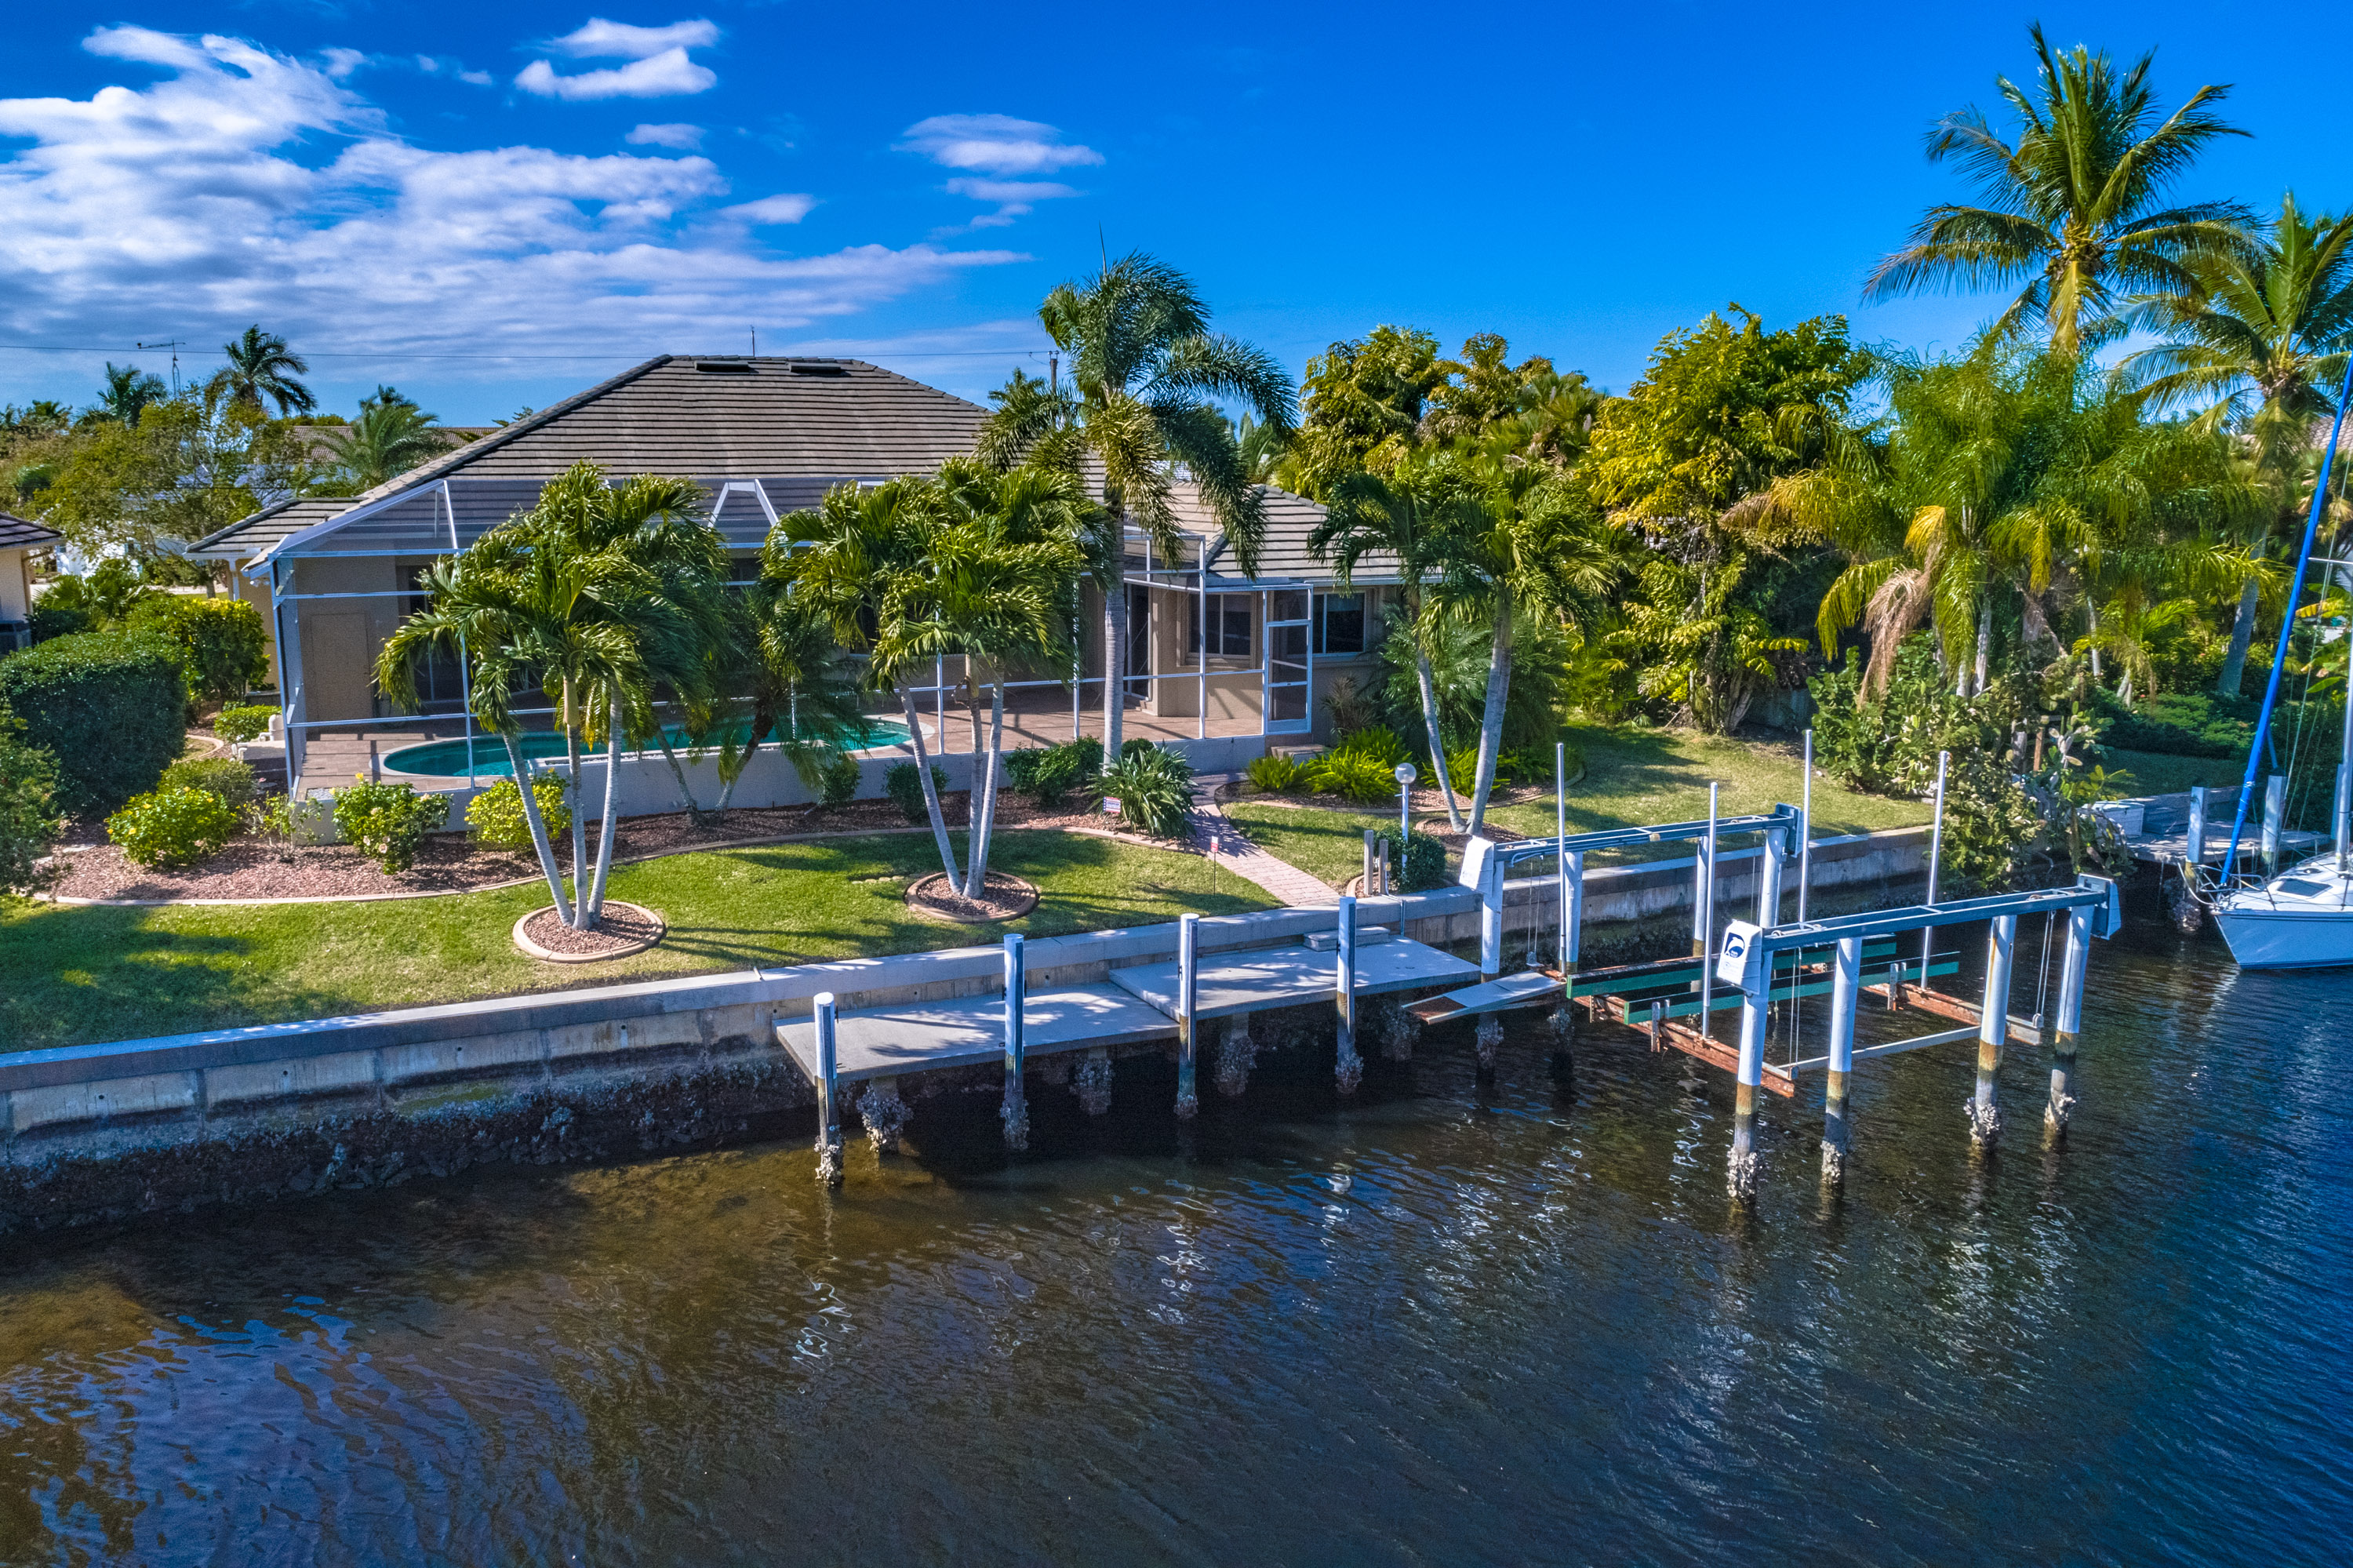 Open House at 1918 Los Alamos Drive in Punta Gorda Isles